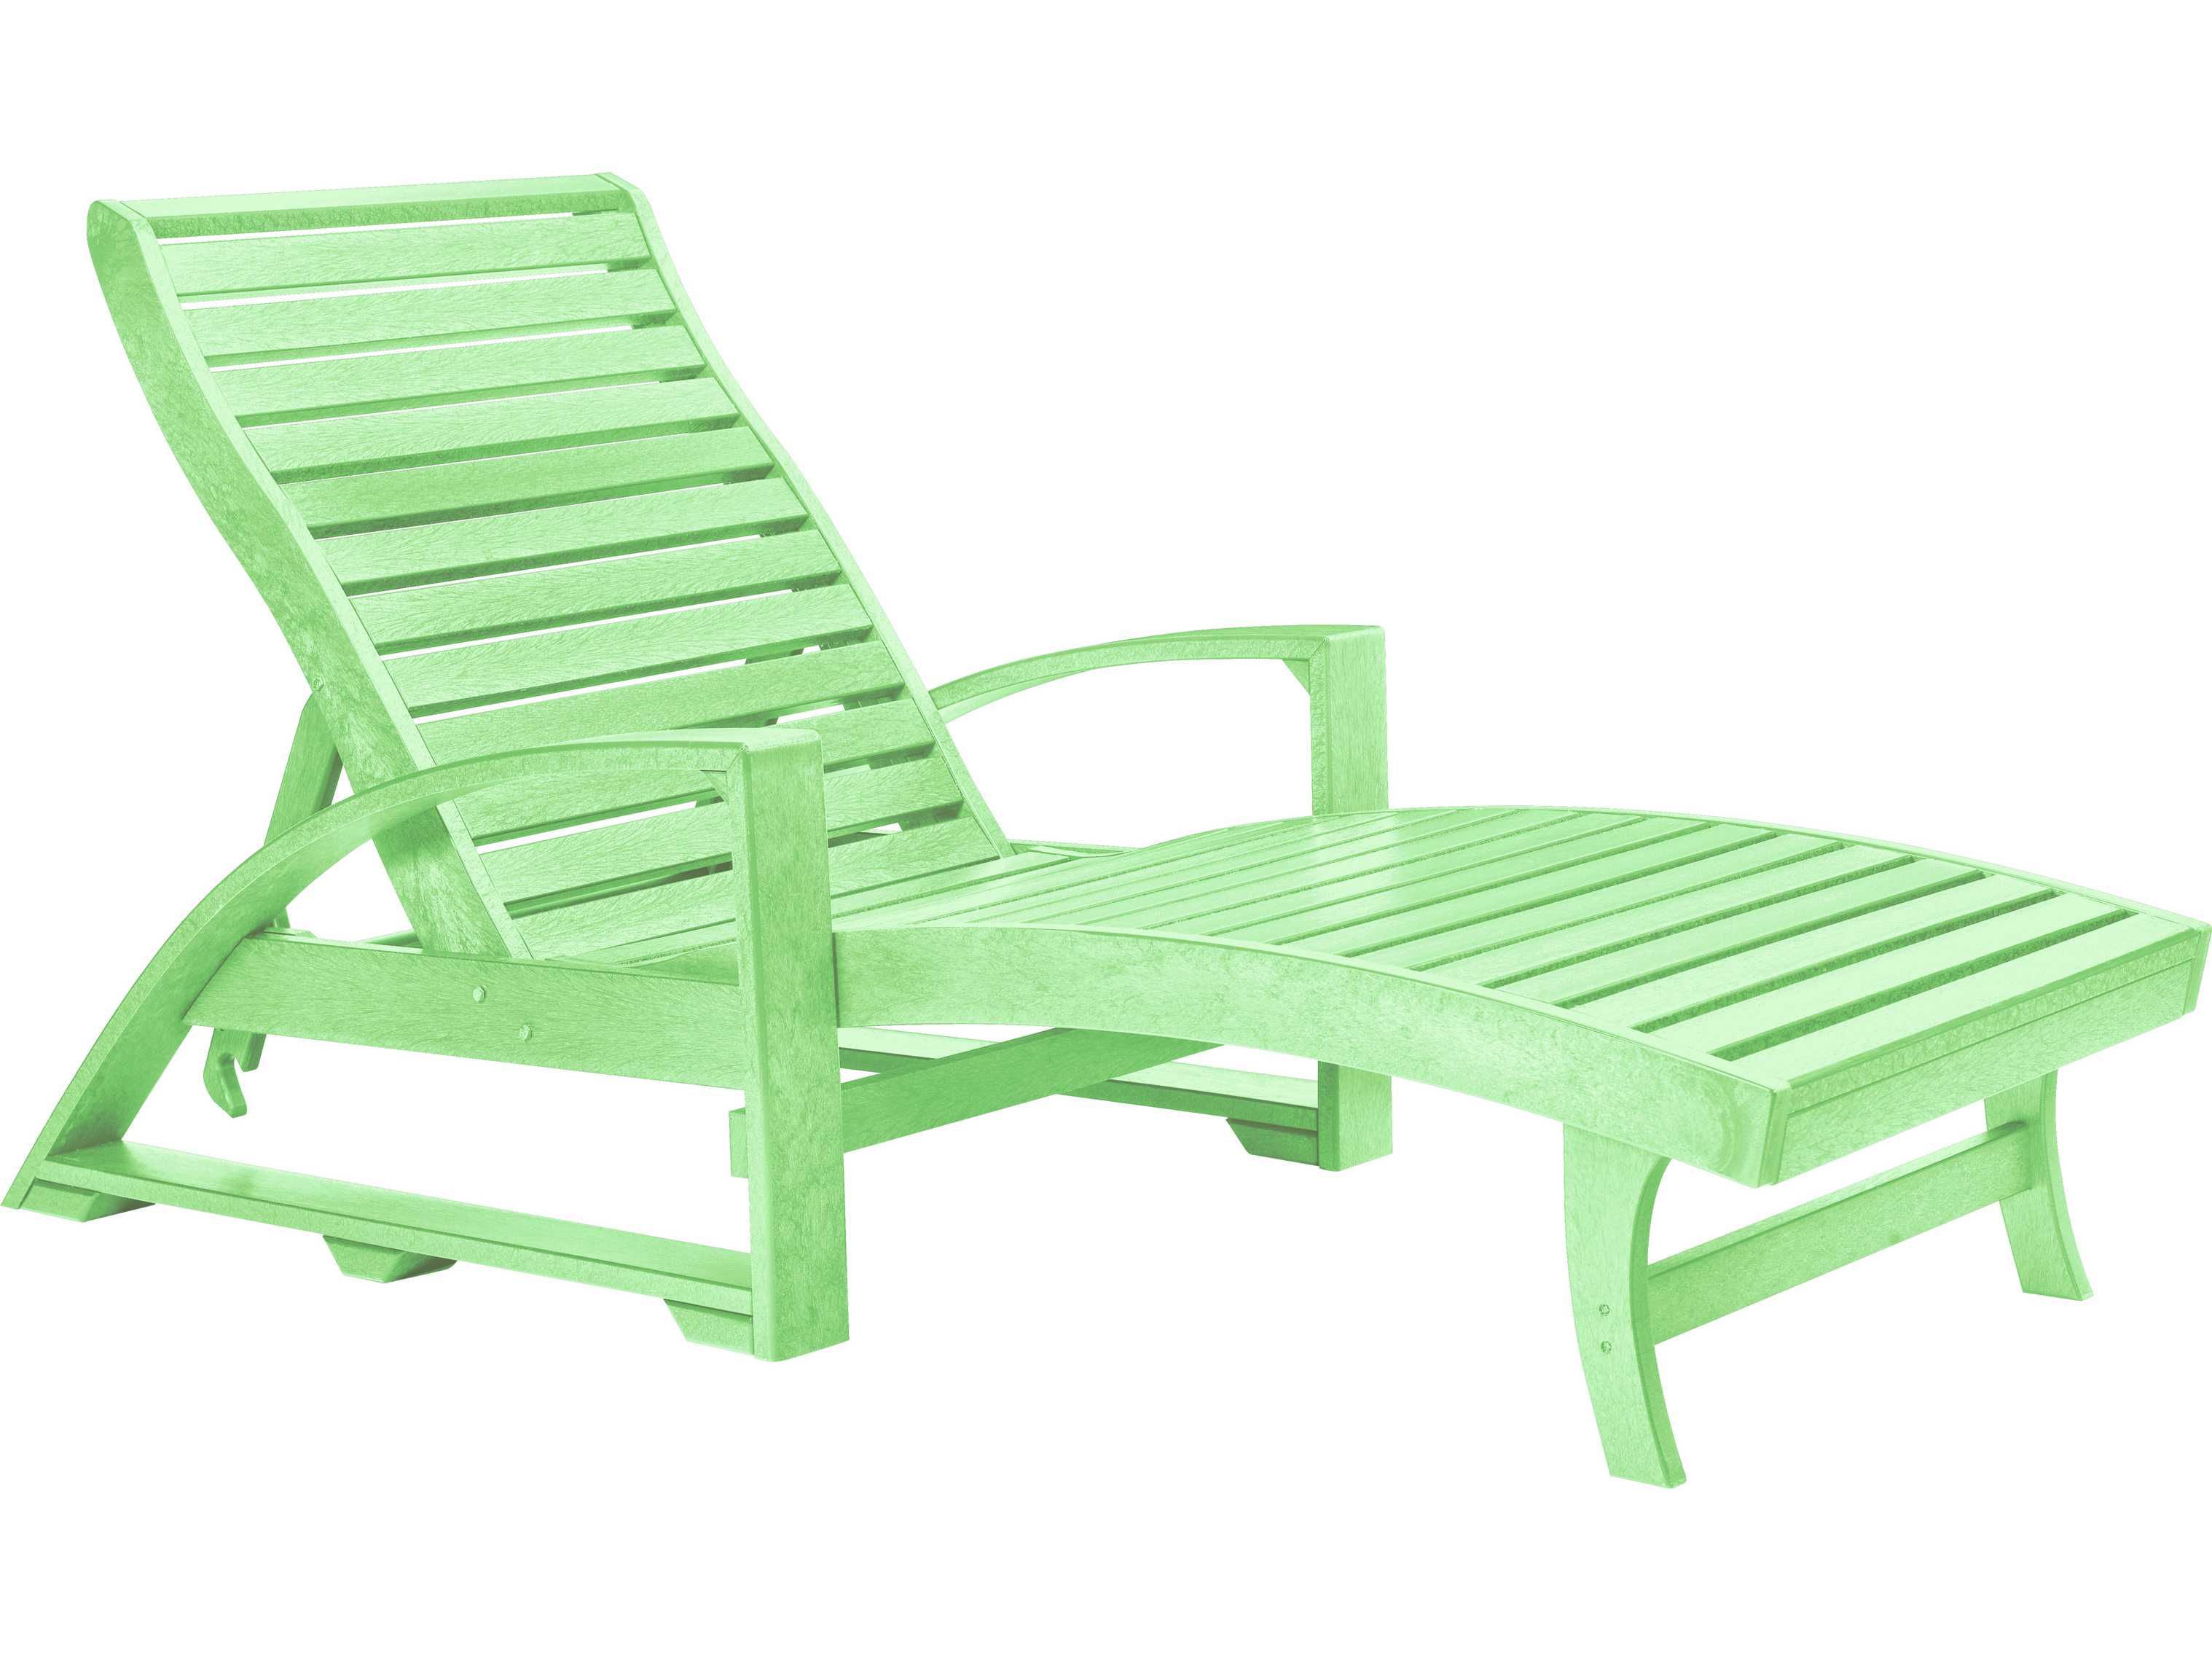 C r plastic st tropez chaise lounge with wheels l38 for Chaise longue jardin pvc